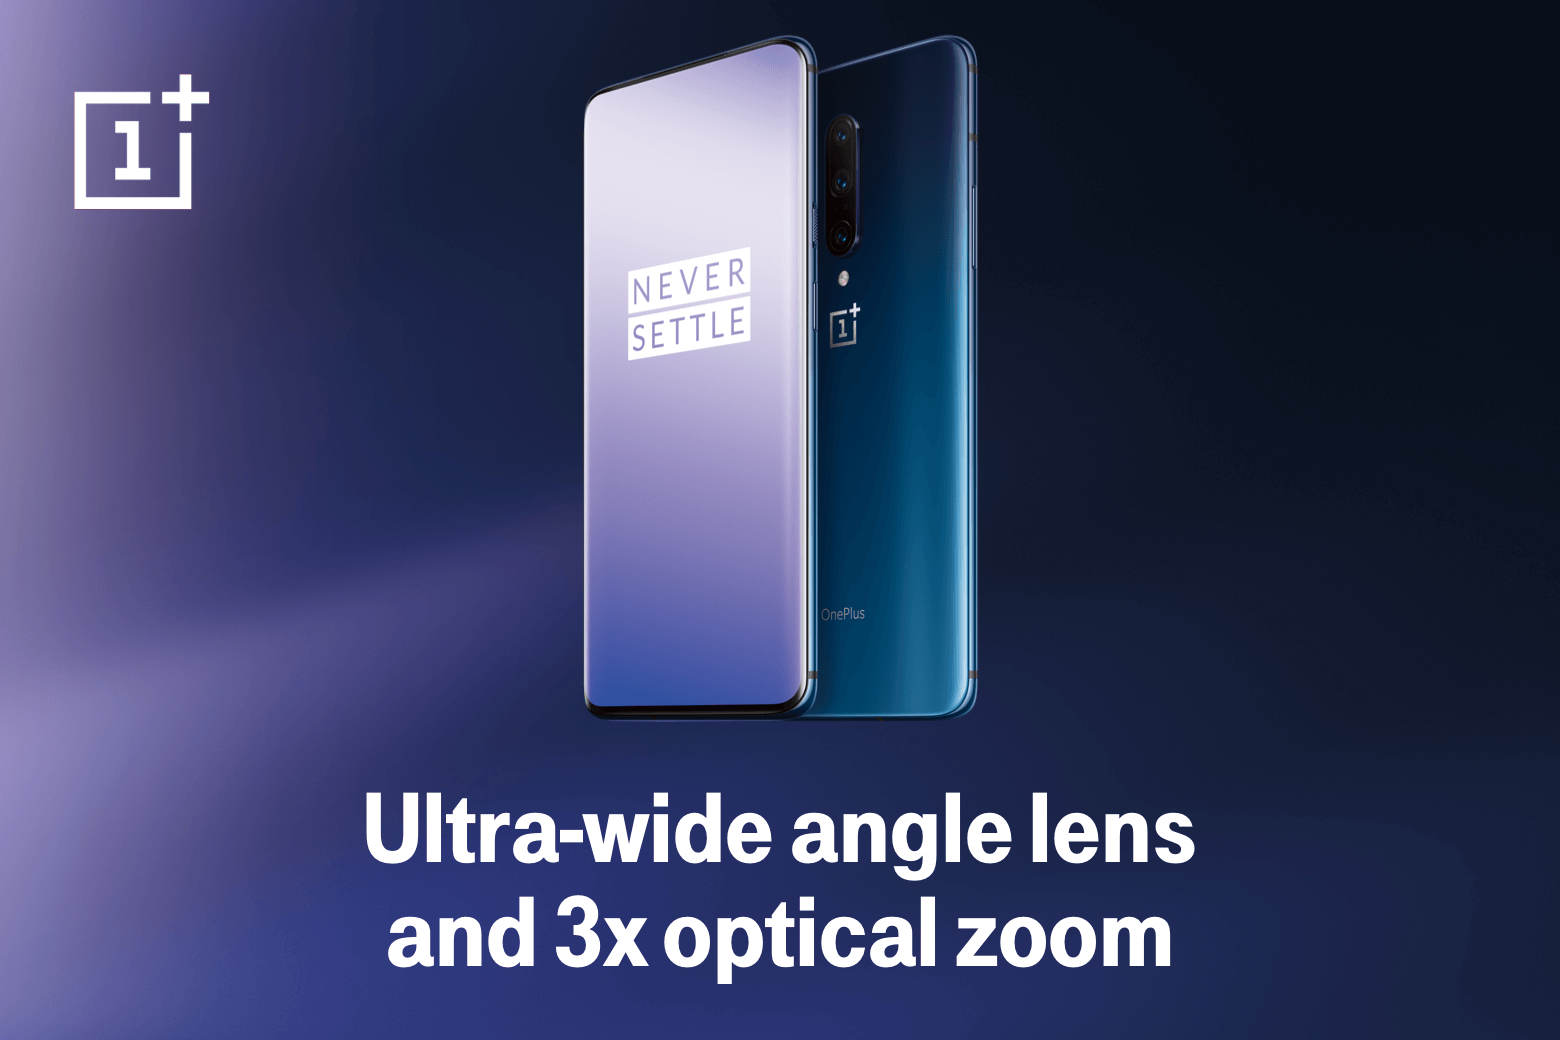 Never Settle. Ultra-wide angle lens and 3x optical zoom.